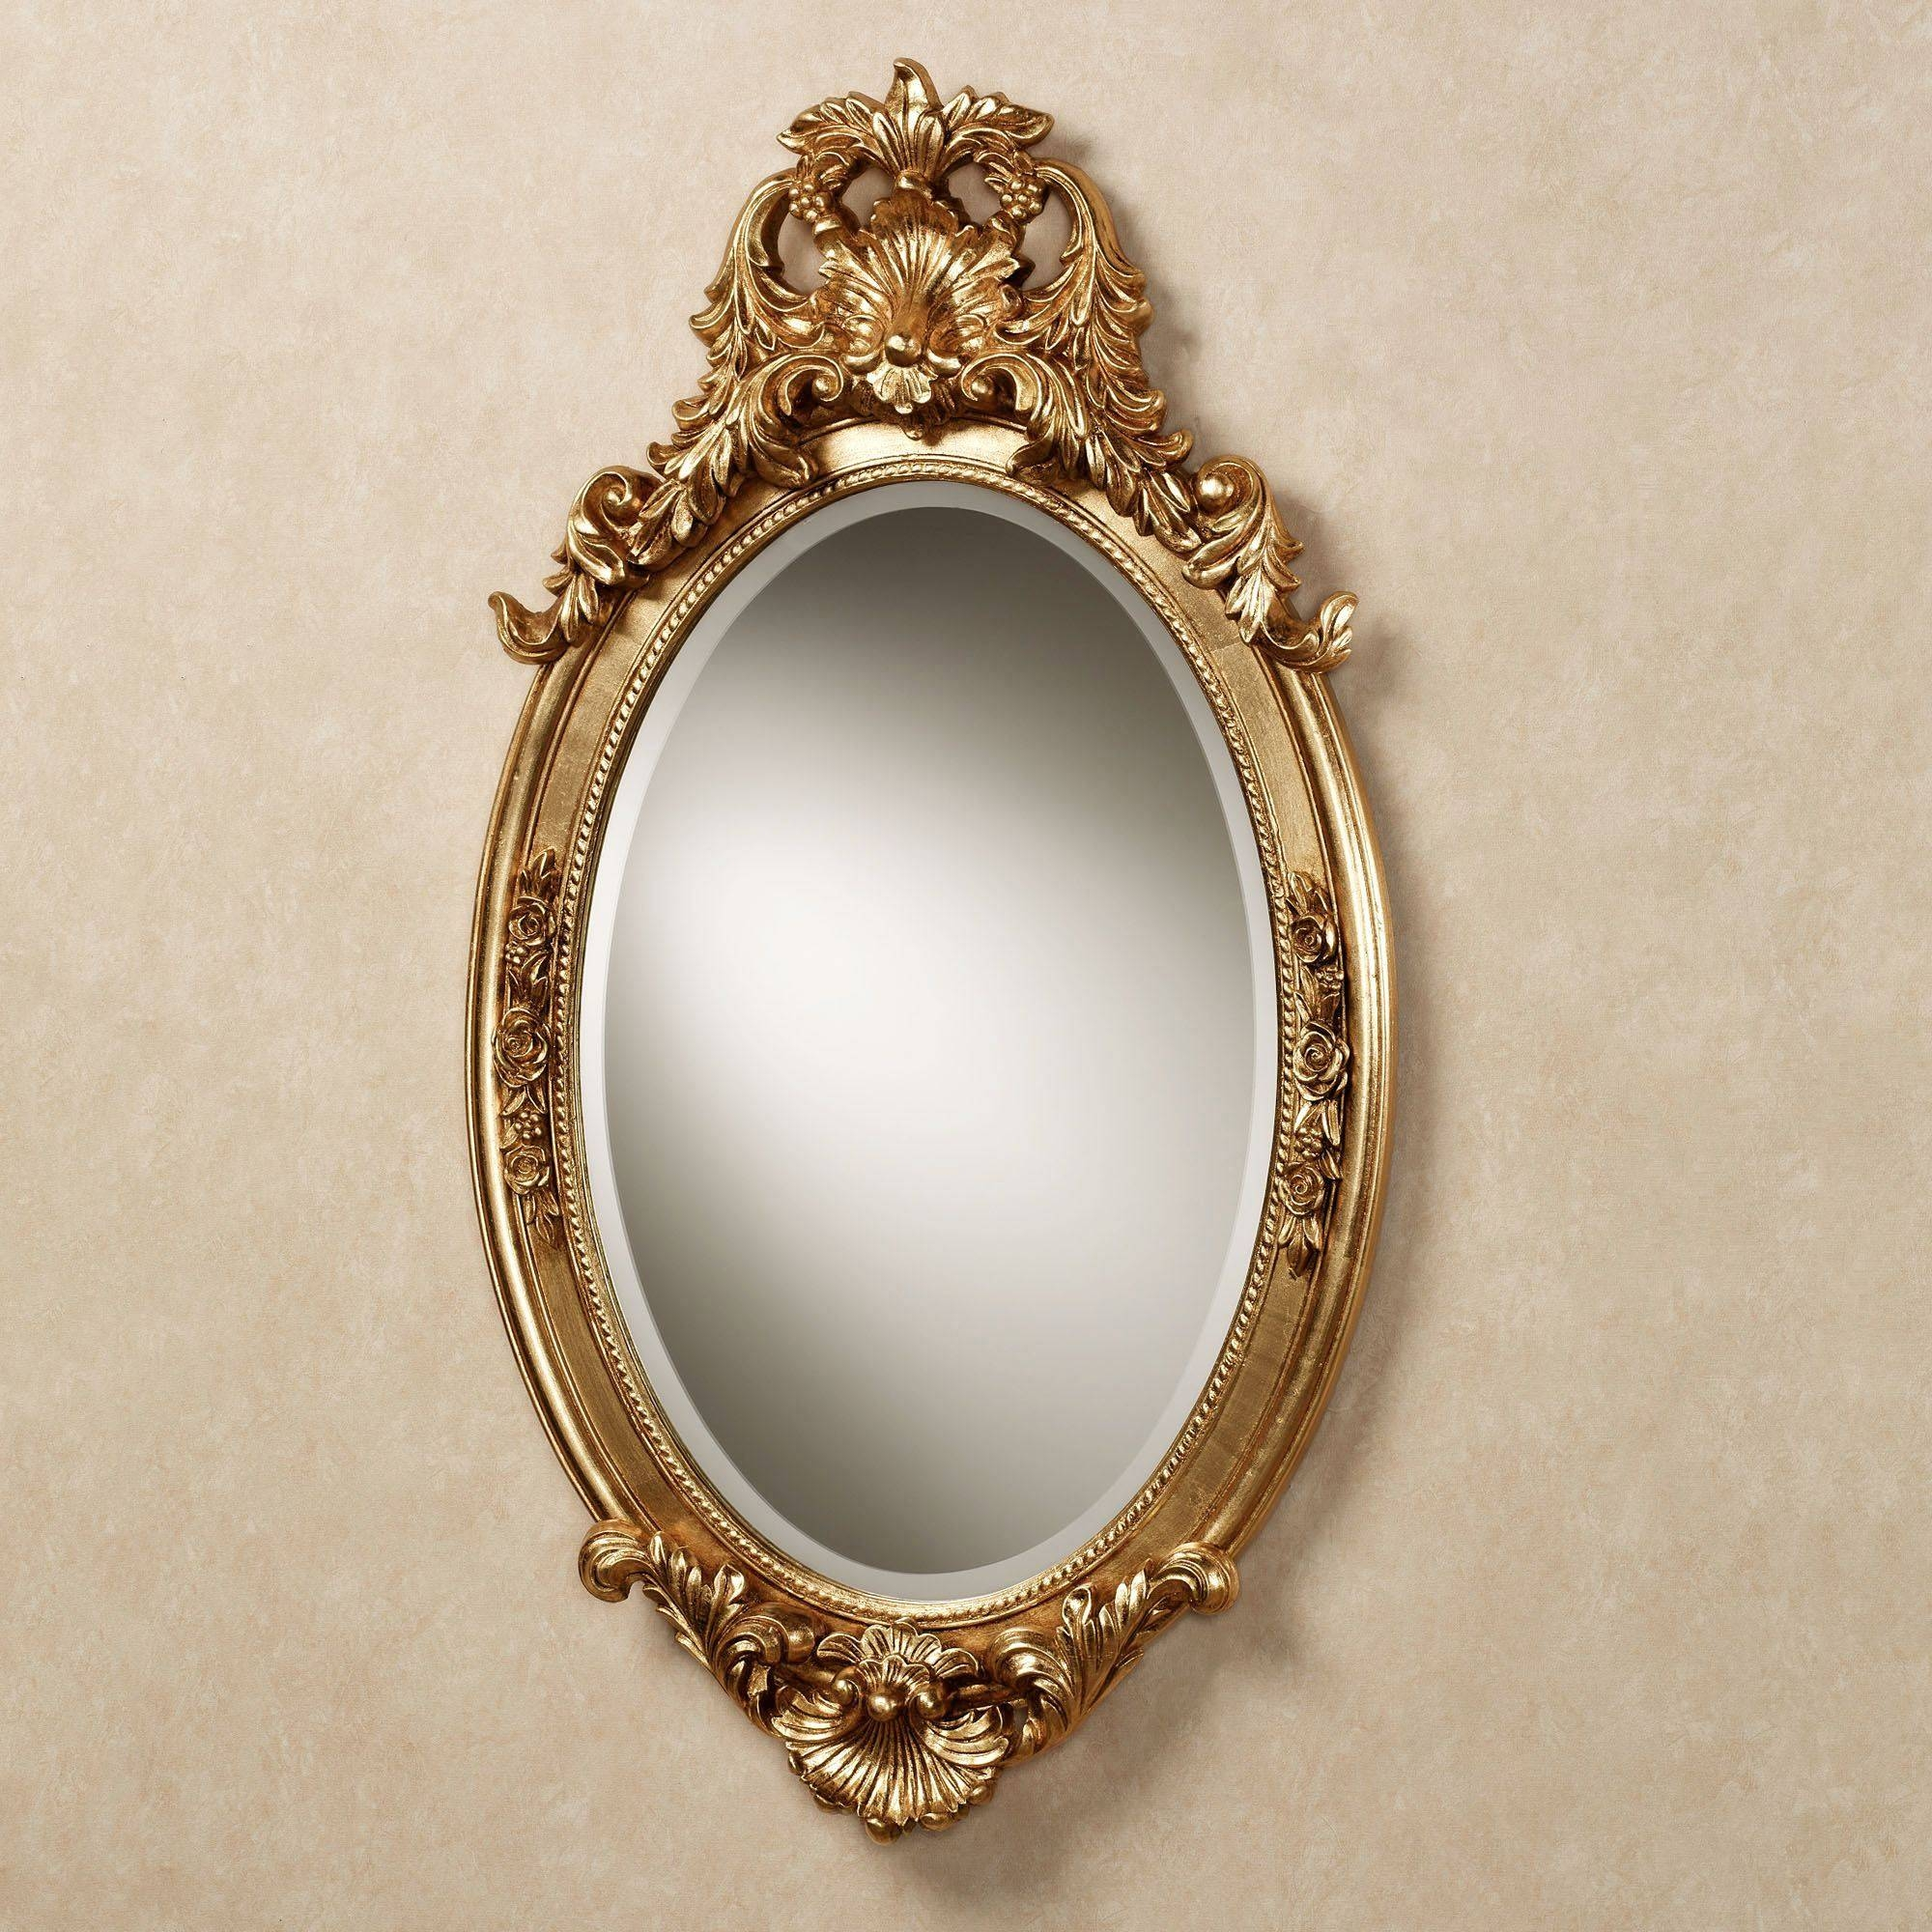 Hallandale Acanthus Leaf Oval Wall Mirror Inside Oval Wall Mirrors (View 10 of 25)